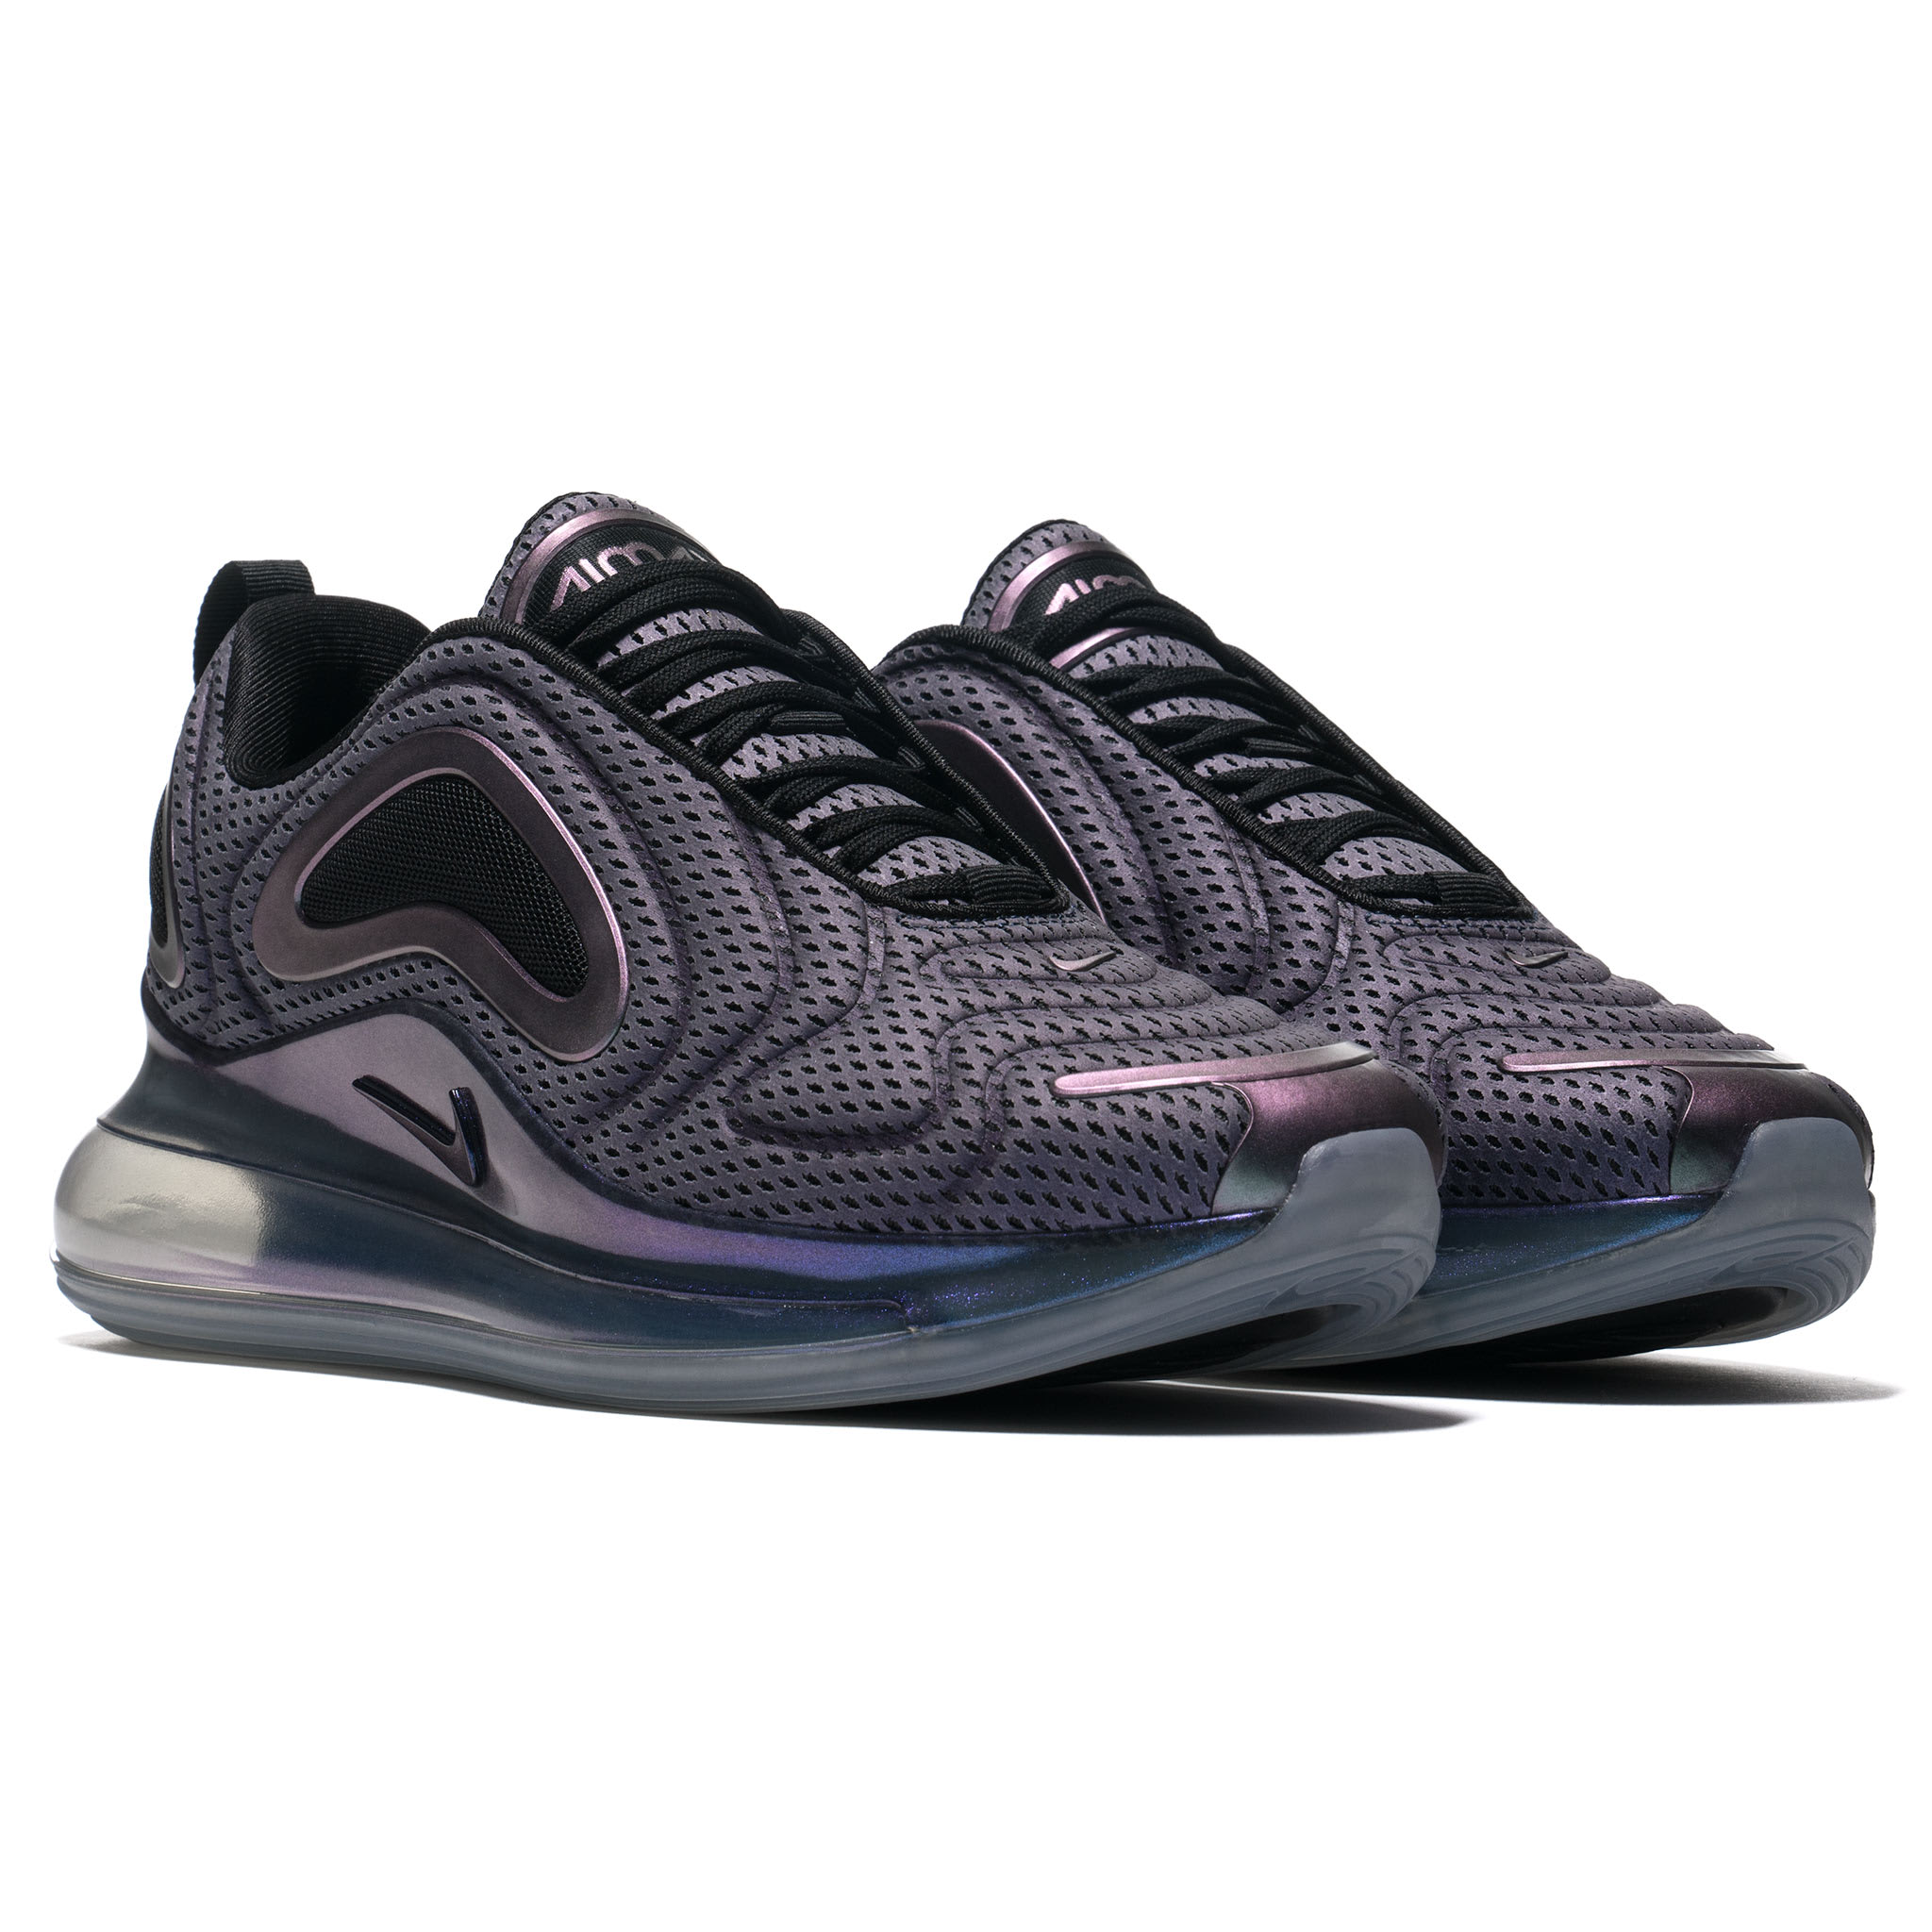 best service 377c8 64cf1 For decades, Nike has evolved footwear with innovative iterations of Nike  Air cushioning. Pushing the limits even further, Nike now delivers the Air  Max 720 ...